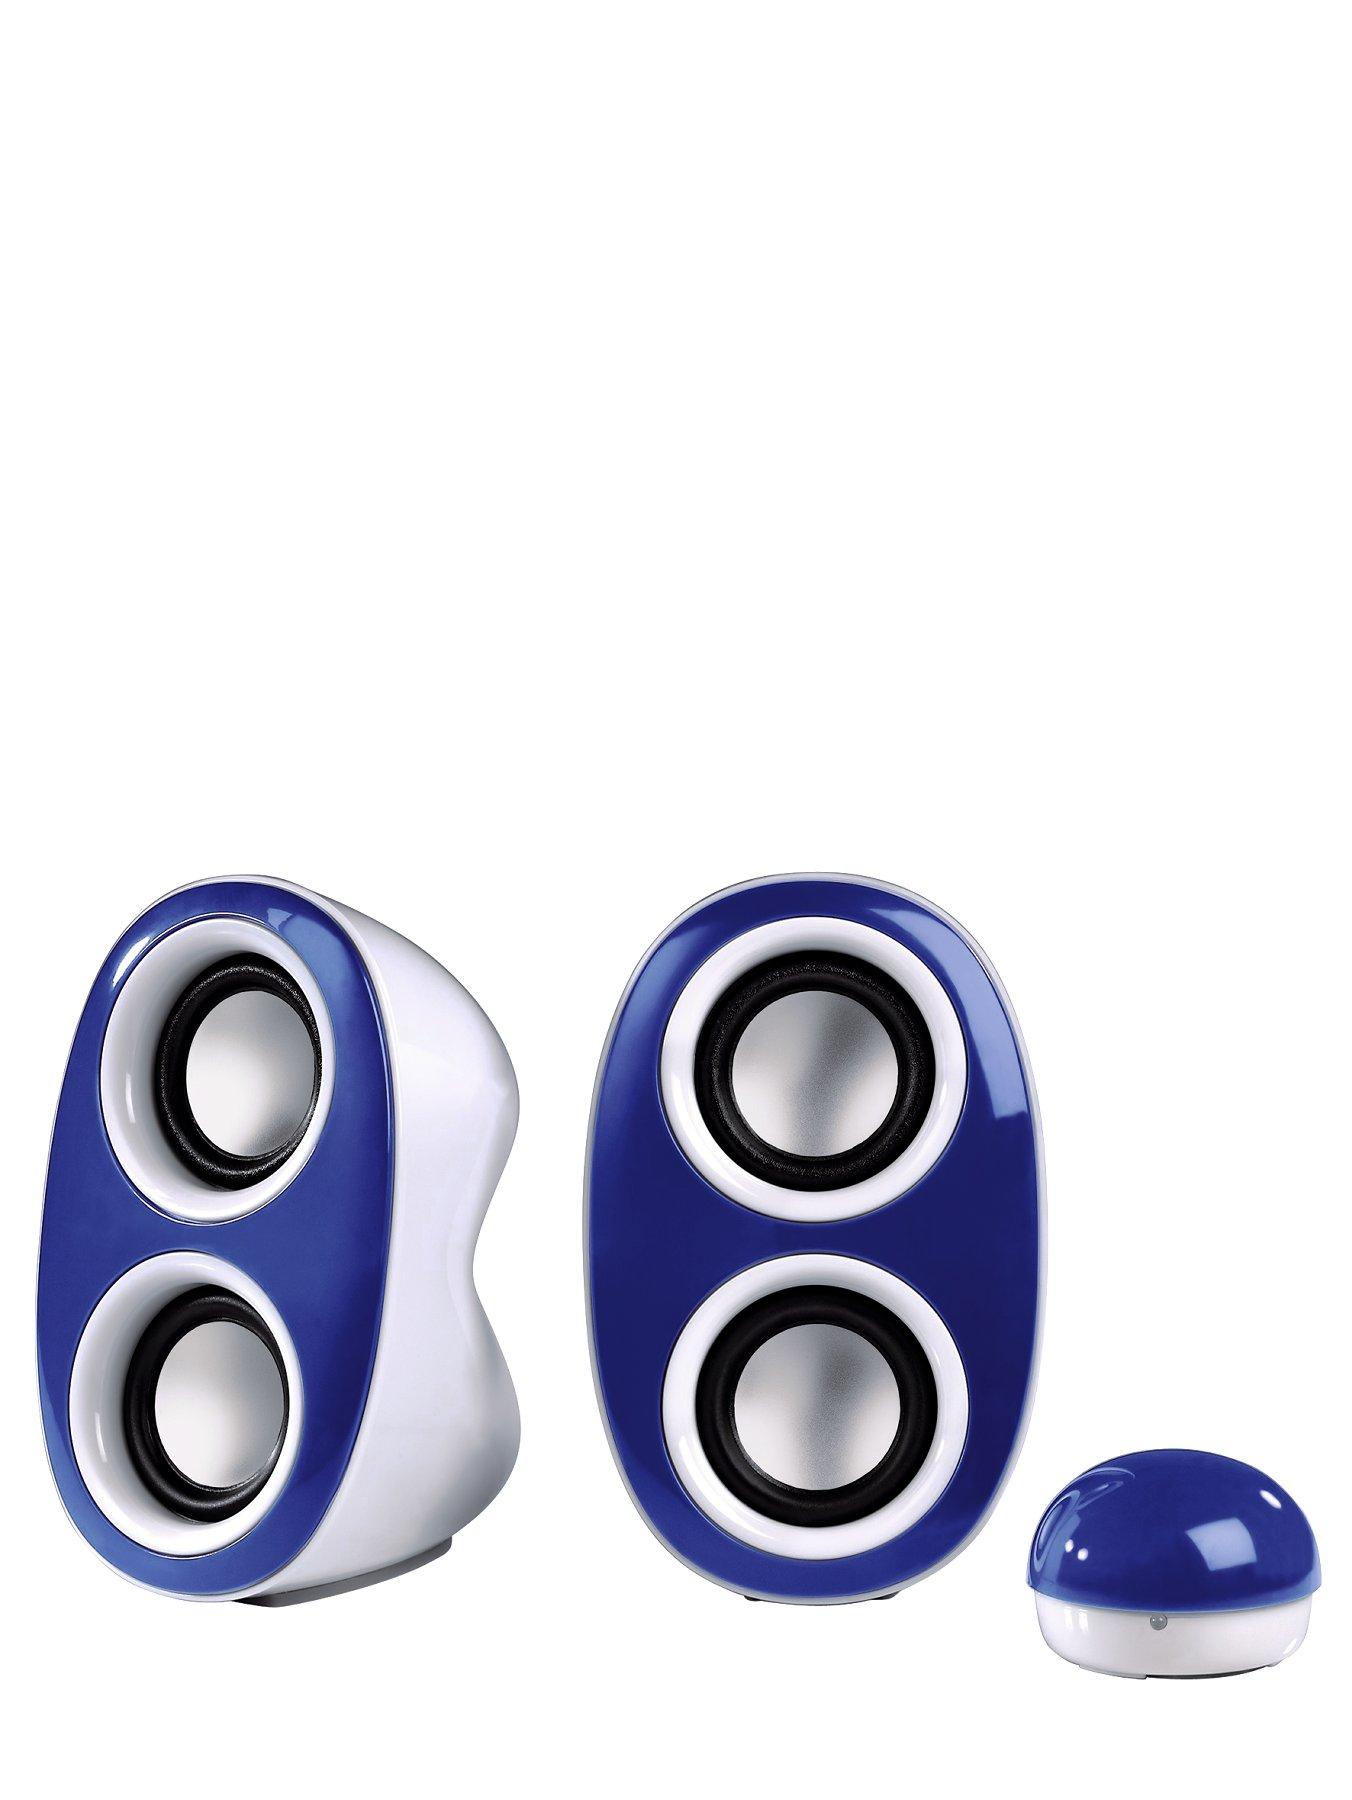 HAMA Dispersion Portable PC Speakers - Blue